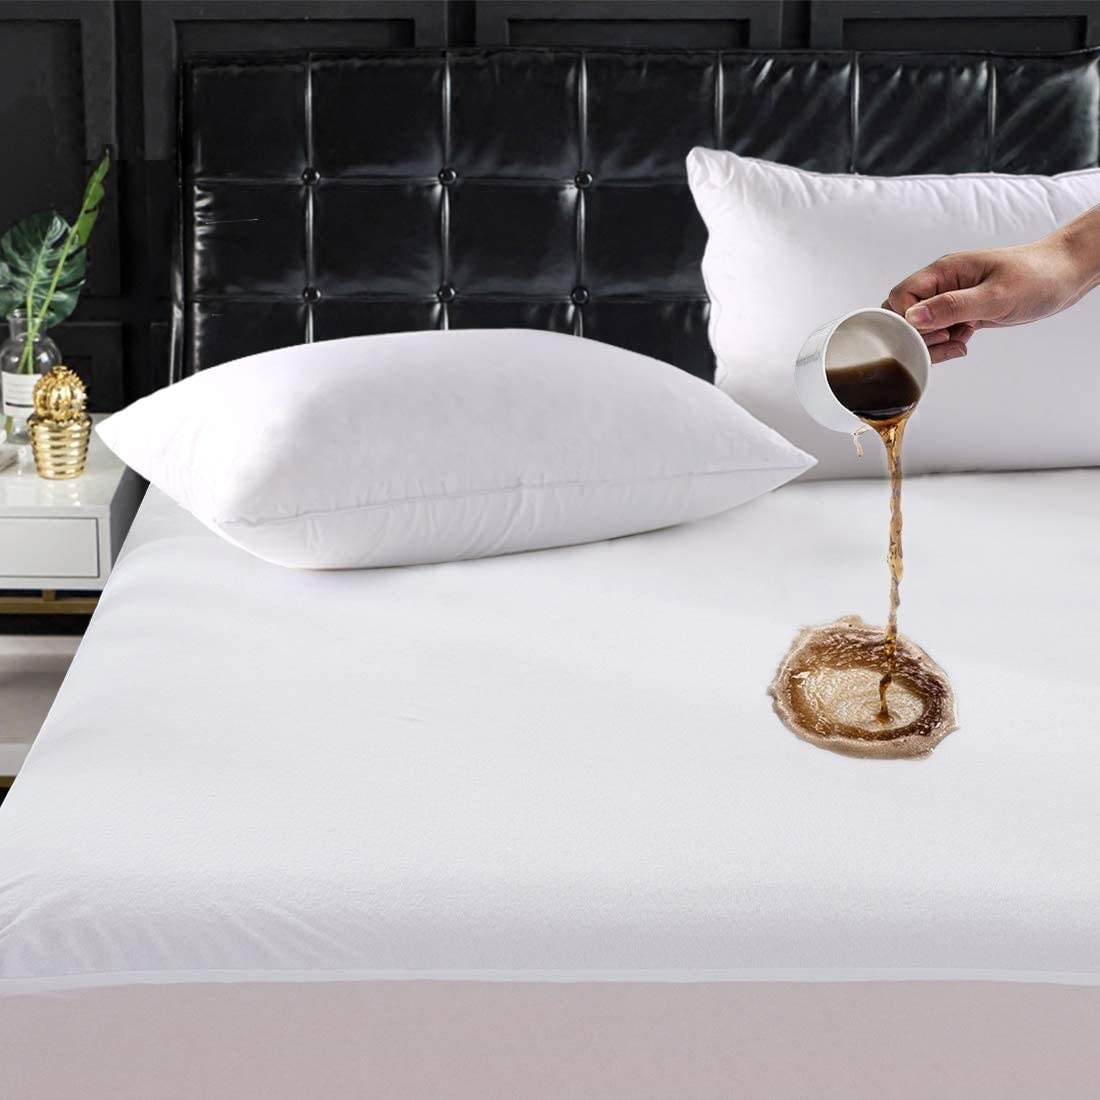 model pouring a cup of coffee on mattress protector